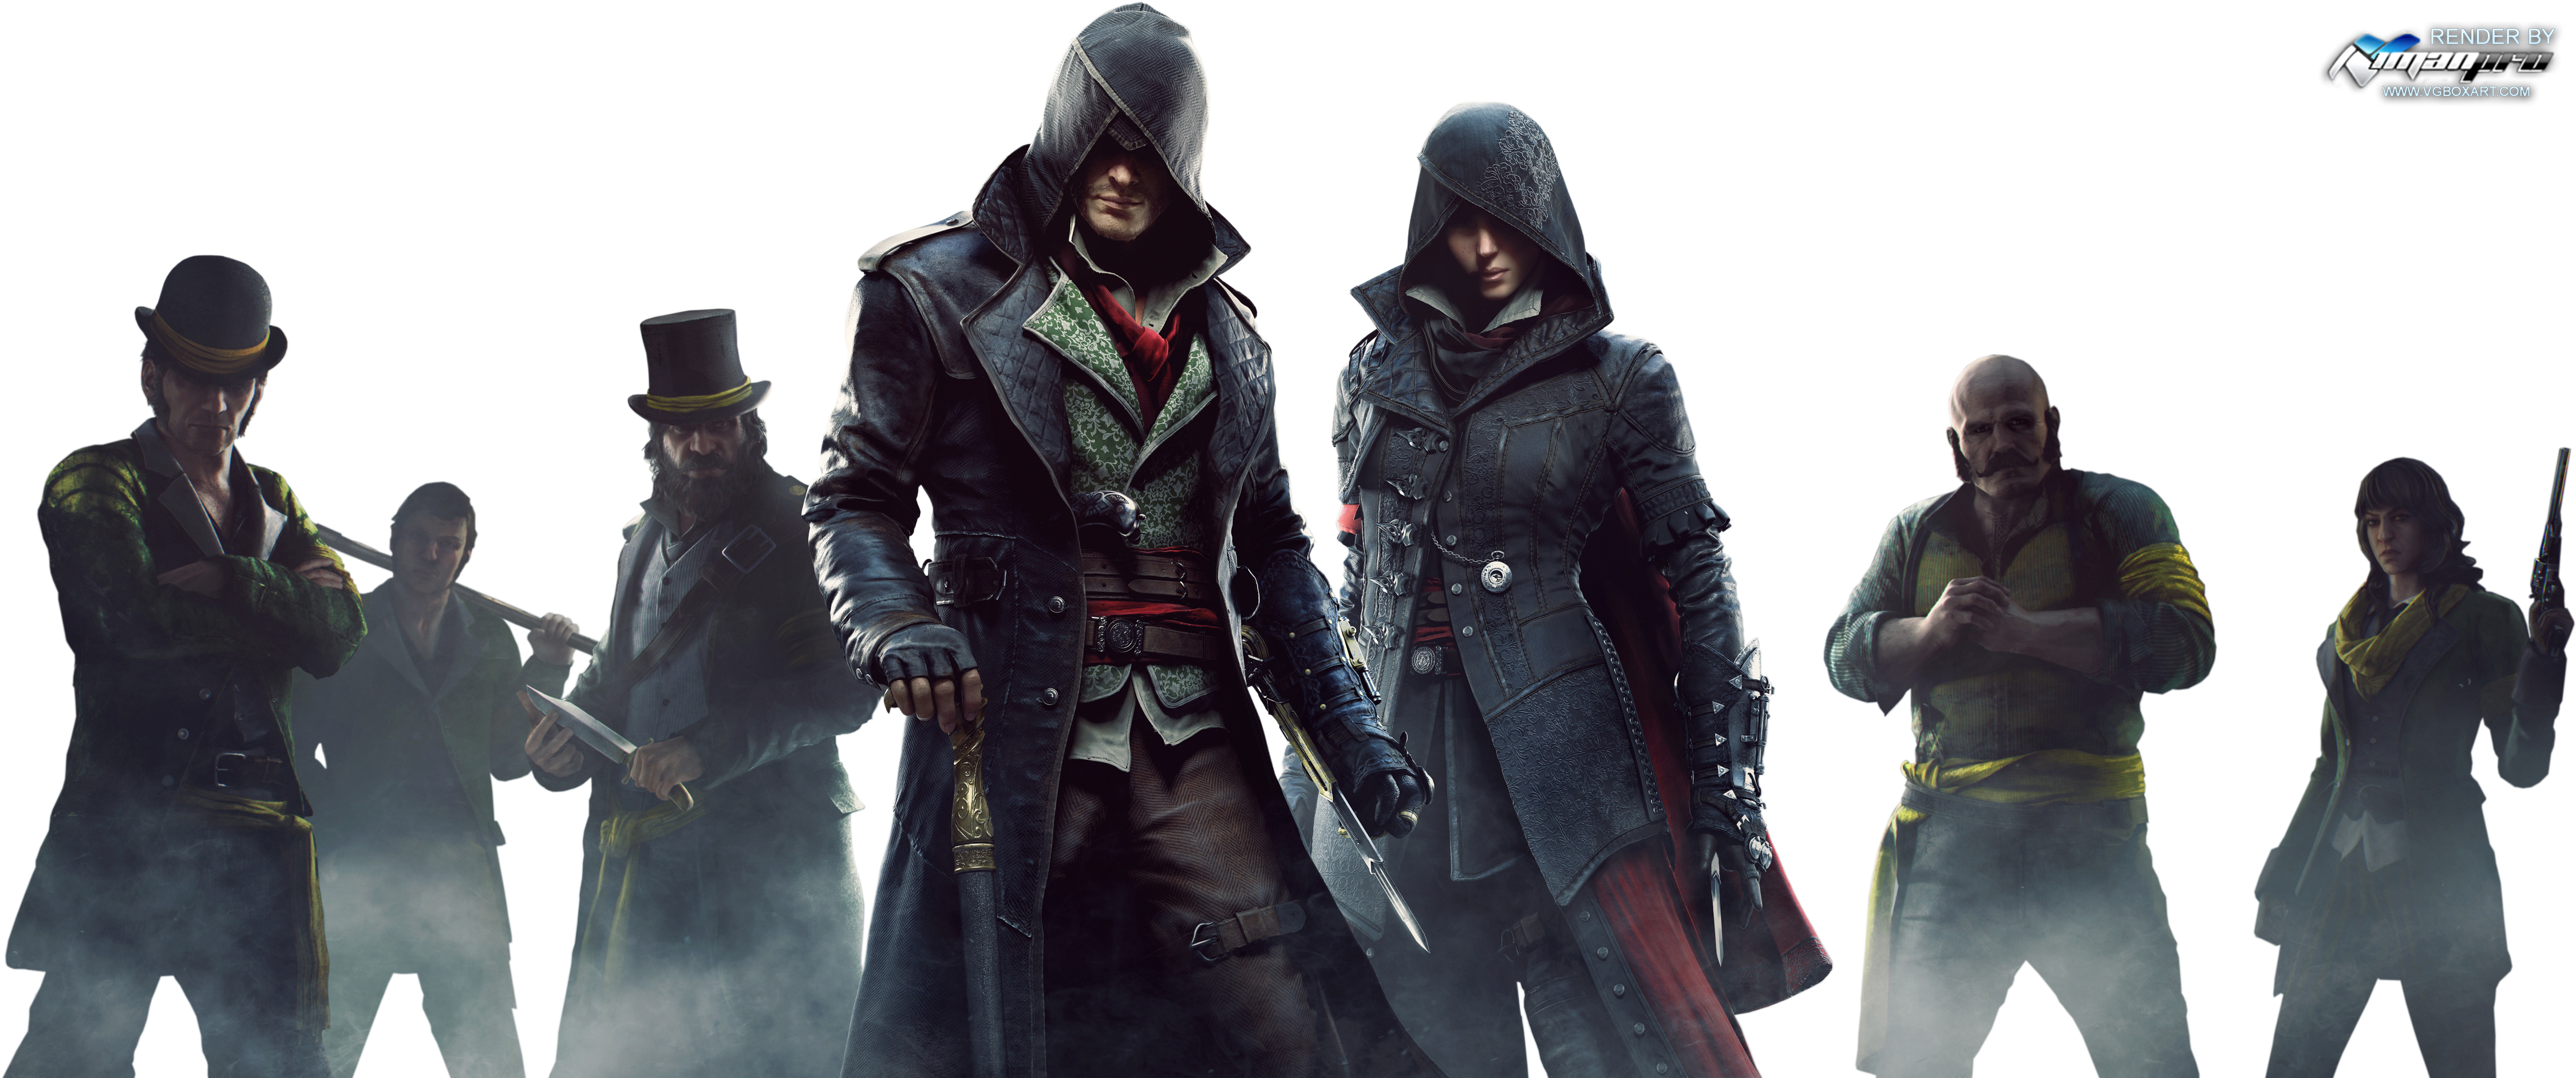 Assassinu0027s Creed Syndicate Render by irancover Assassinu0027s Creed Syndicate  Render by irancover - Assassin Creed Syndicate PNG